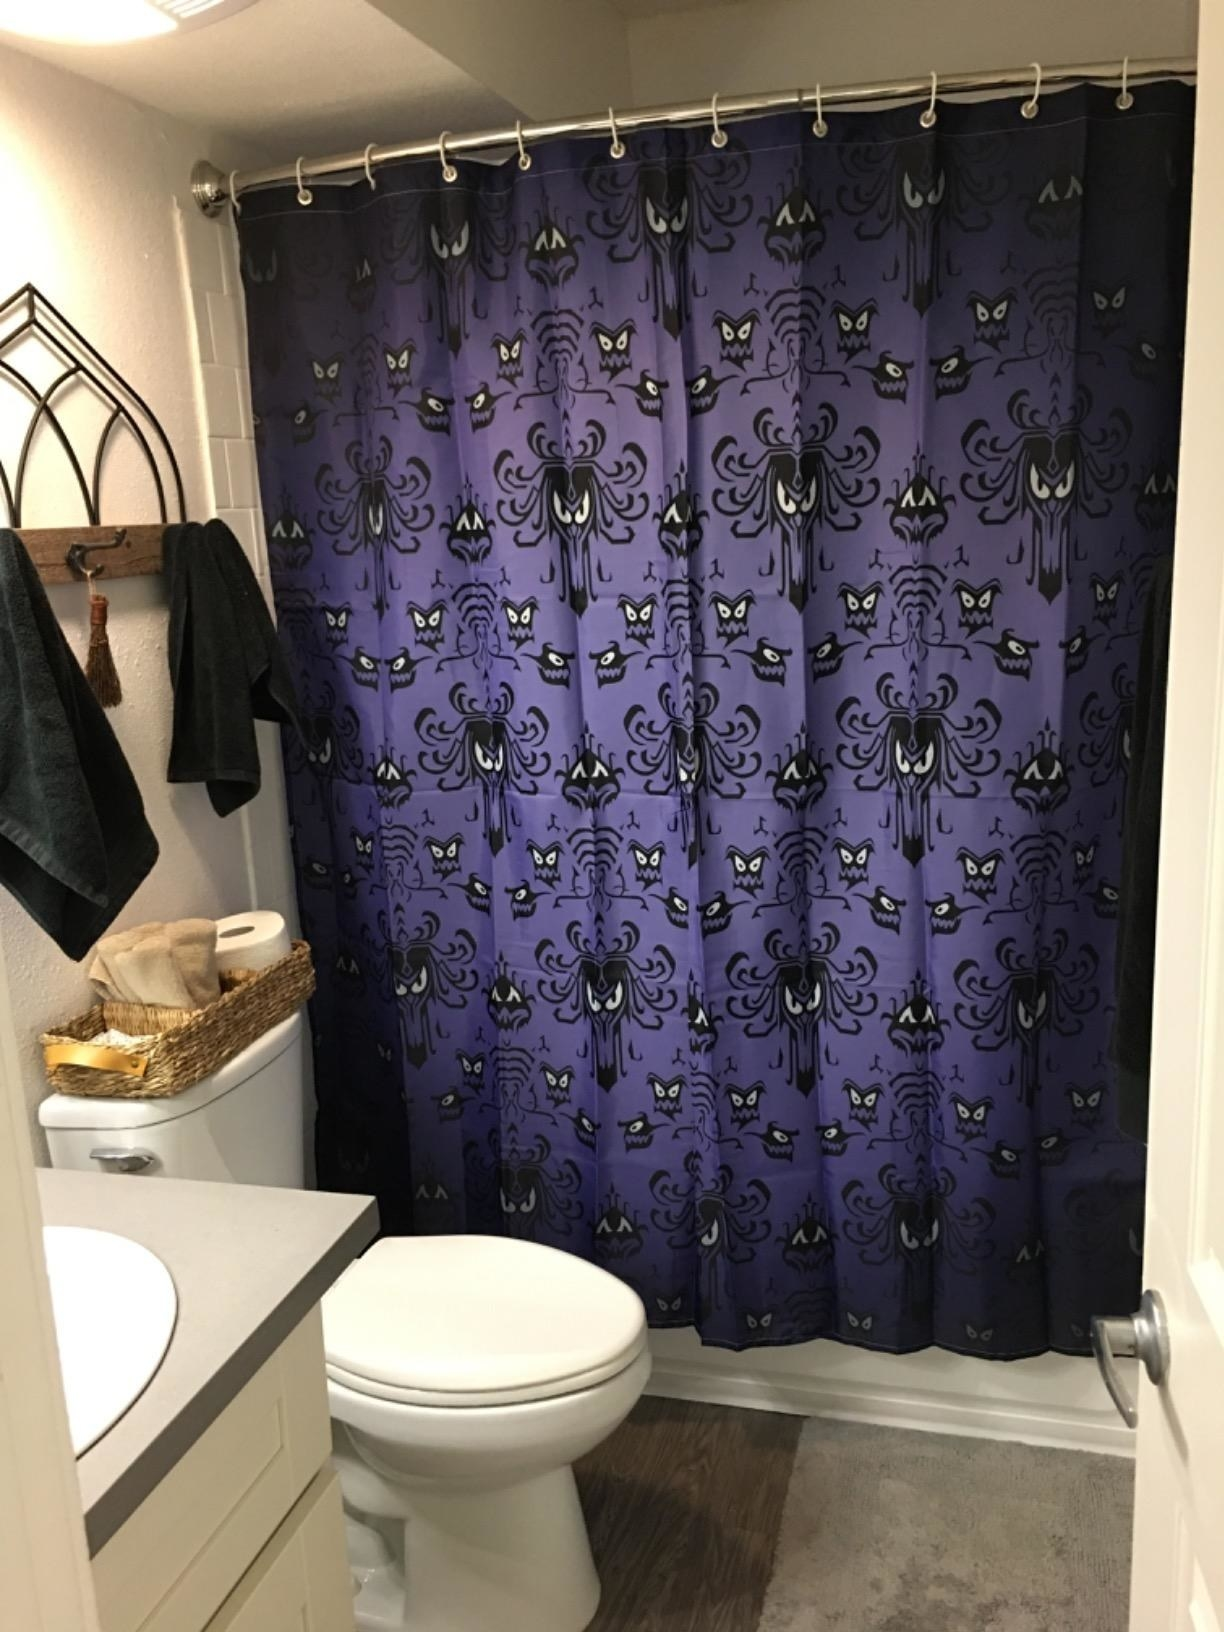 the iconic purple wallpaper from the haunted mansion as a shower curtain